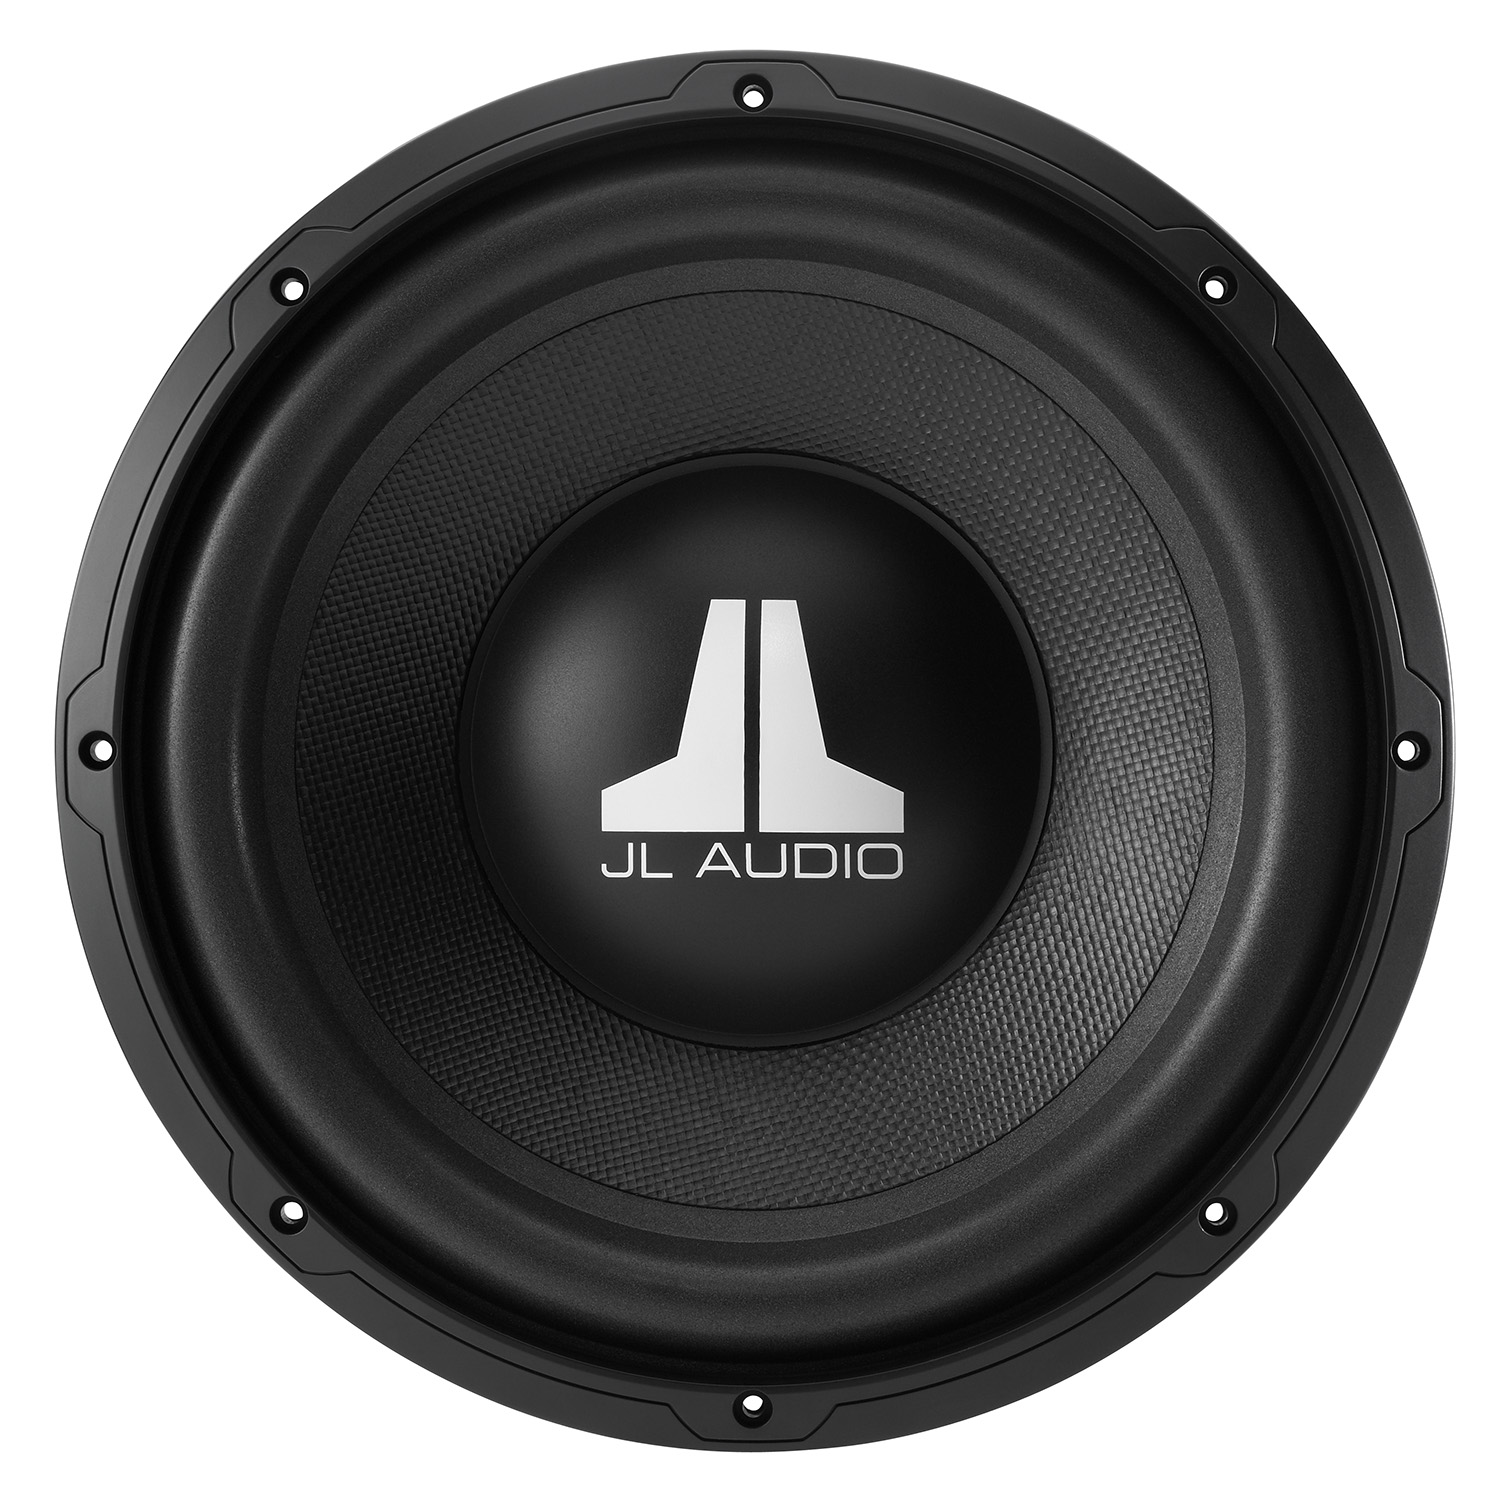 jl audio 12wx 4 200w 12 subwoofer mega watt. Black Bedroom Furniture Sets. Home Design Ideas